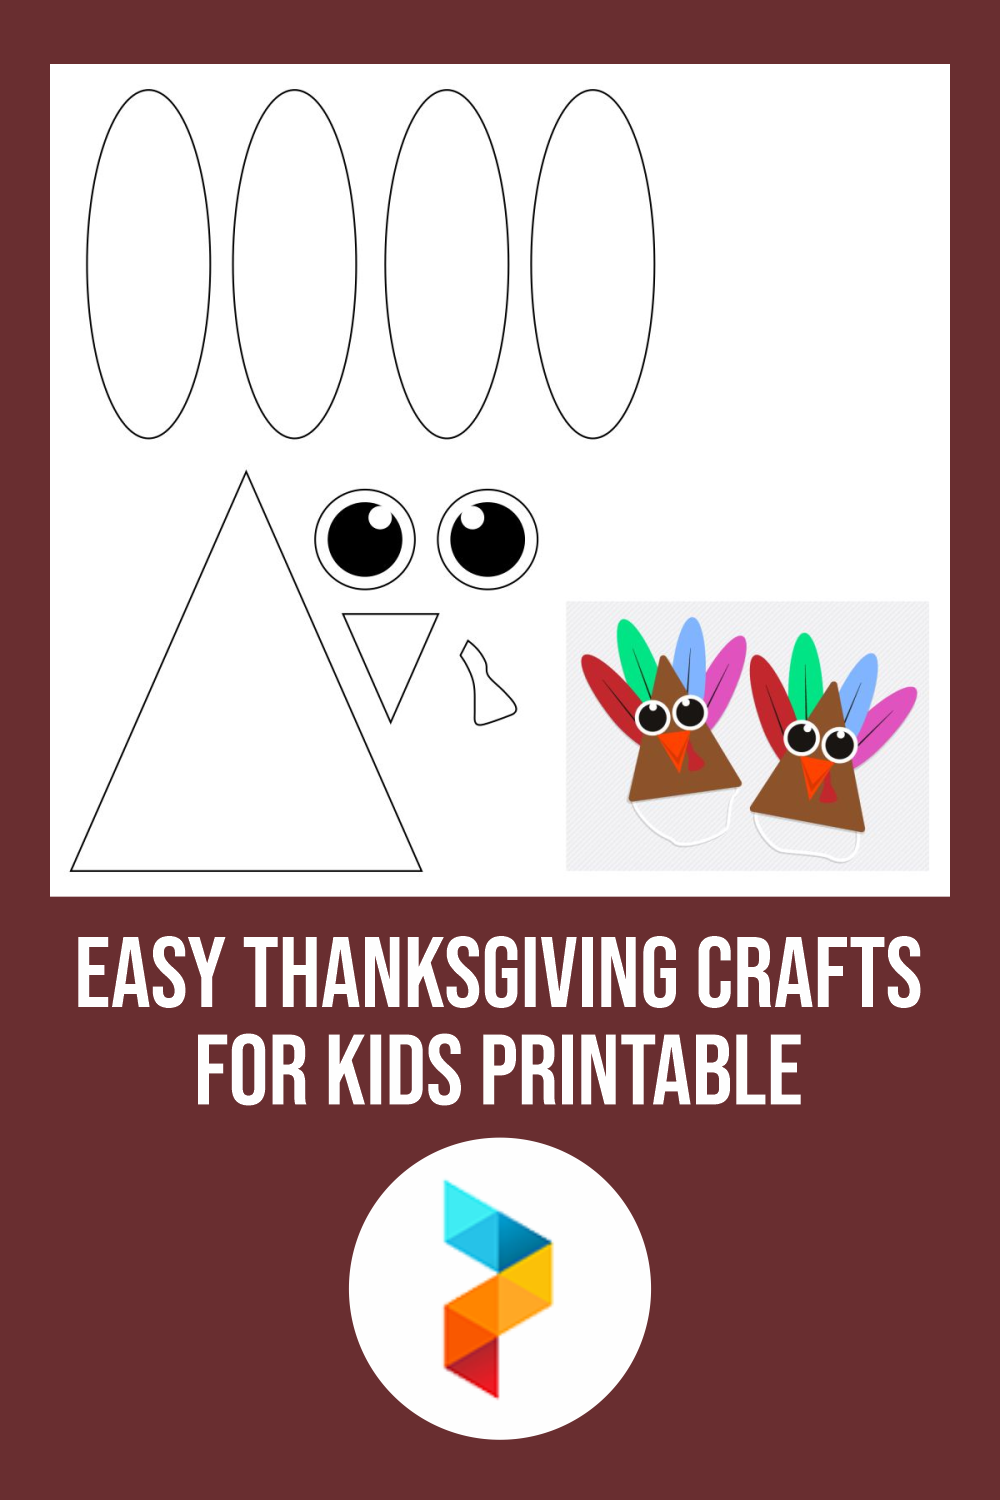 Easy Thanksgiving Crafts For Kids Printable